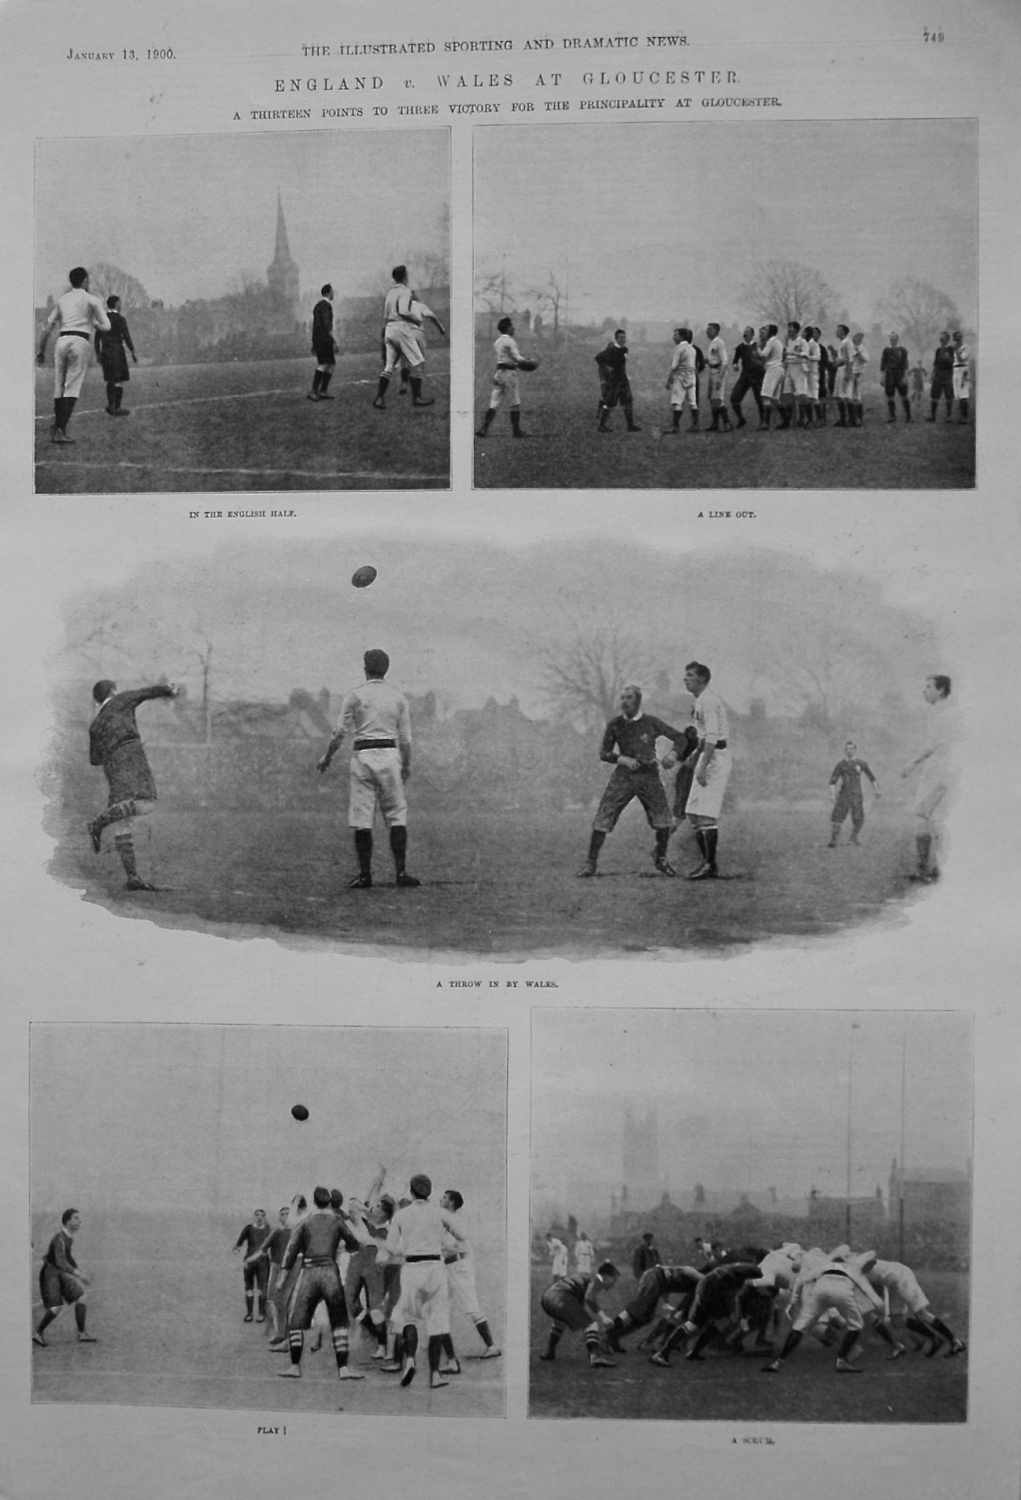 England v. Wales at Gloucester. 1900 (Rugby)